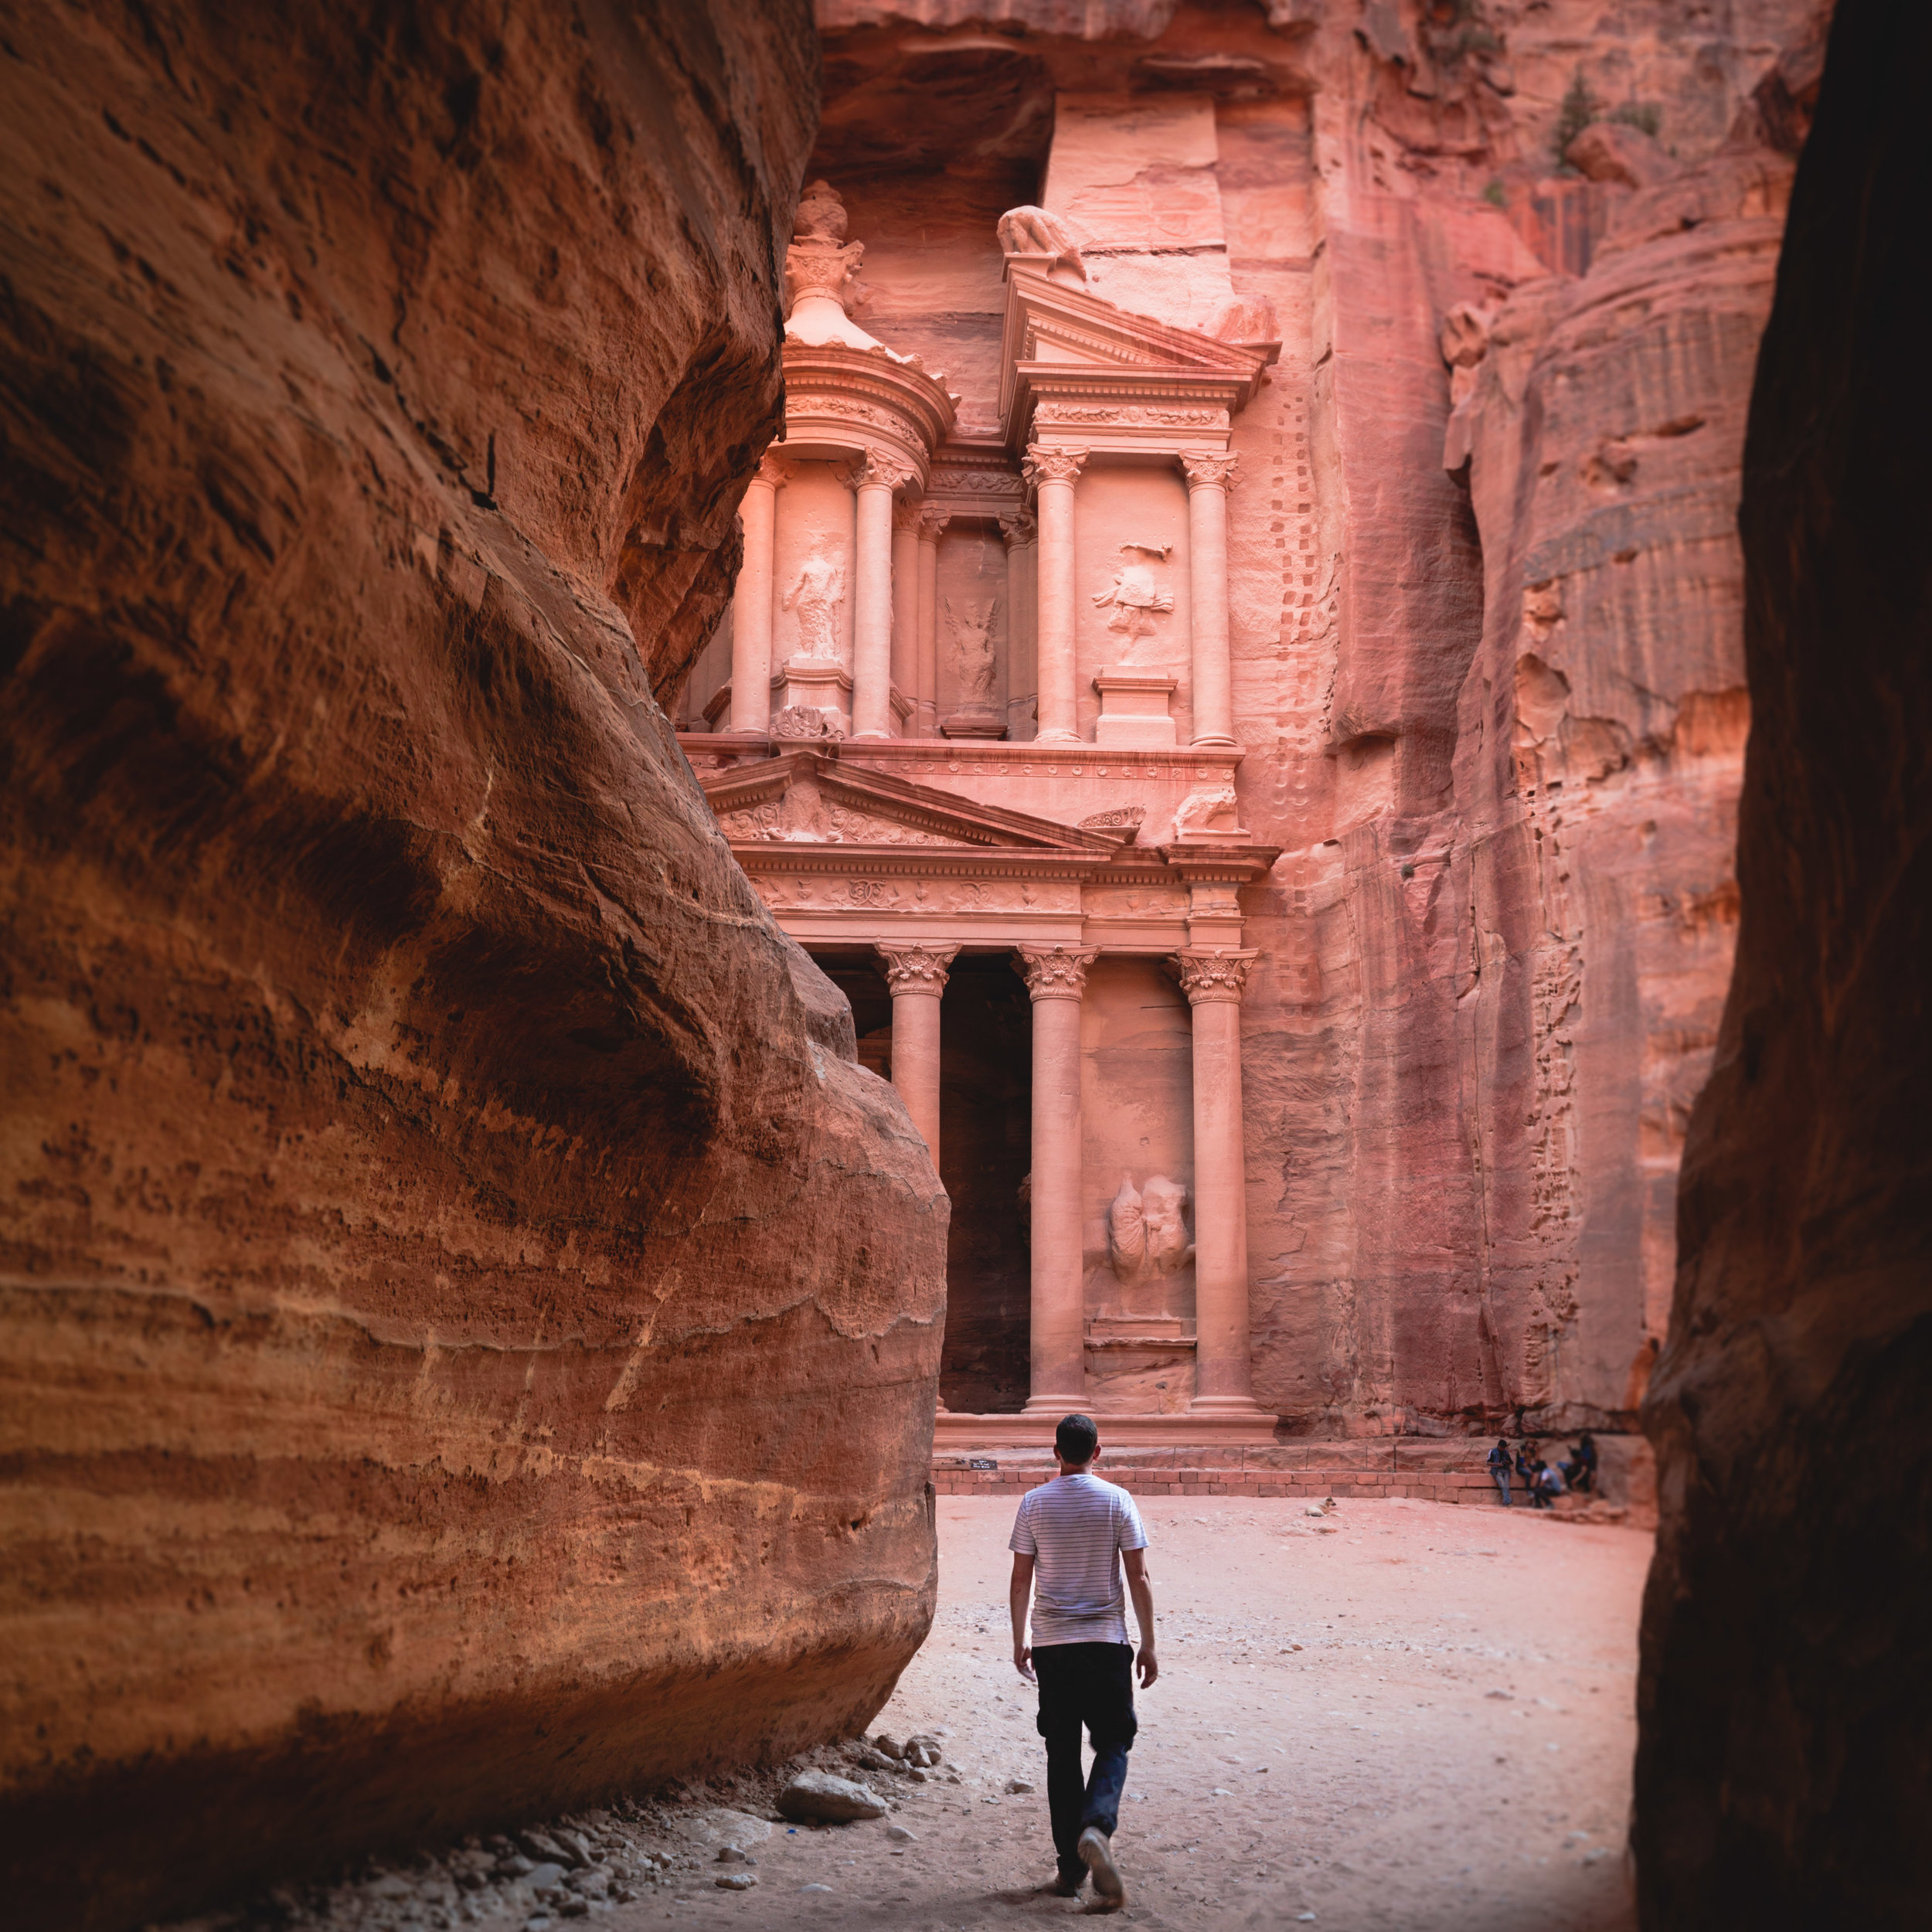 Make sure this view at sunrise is your introduction to Petra